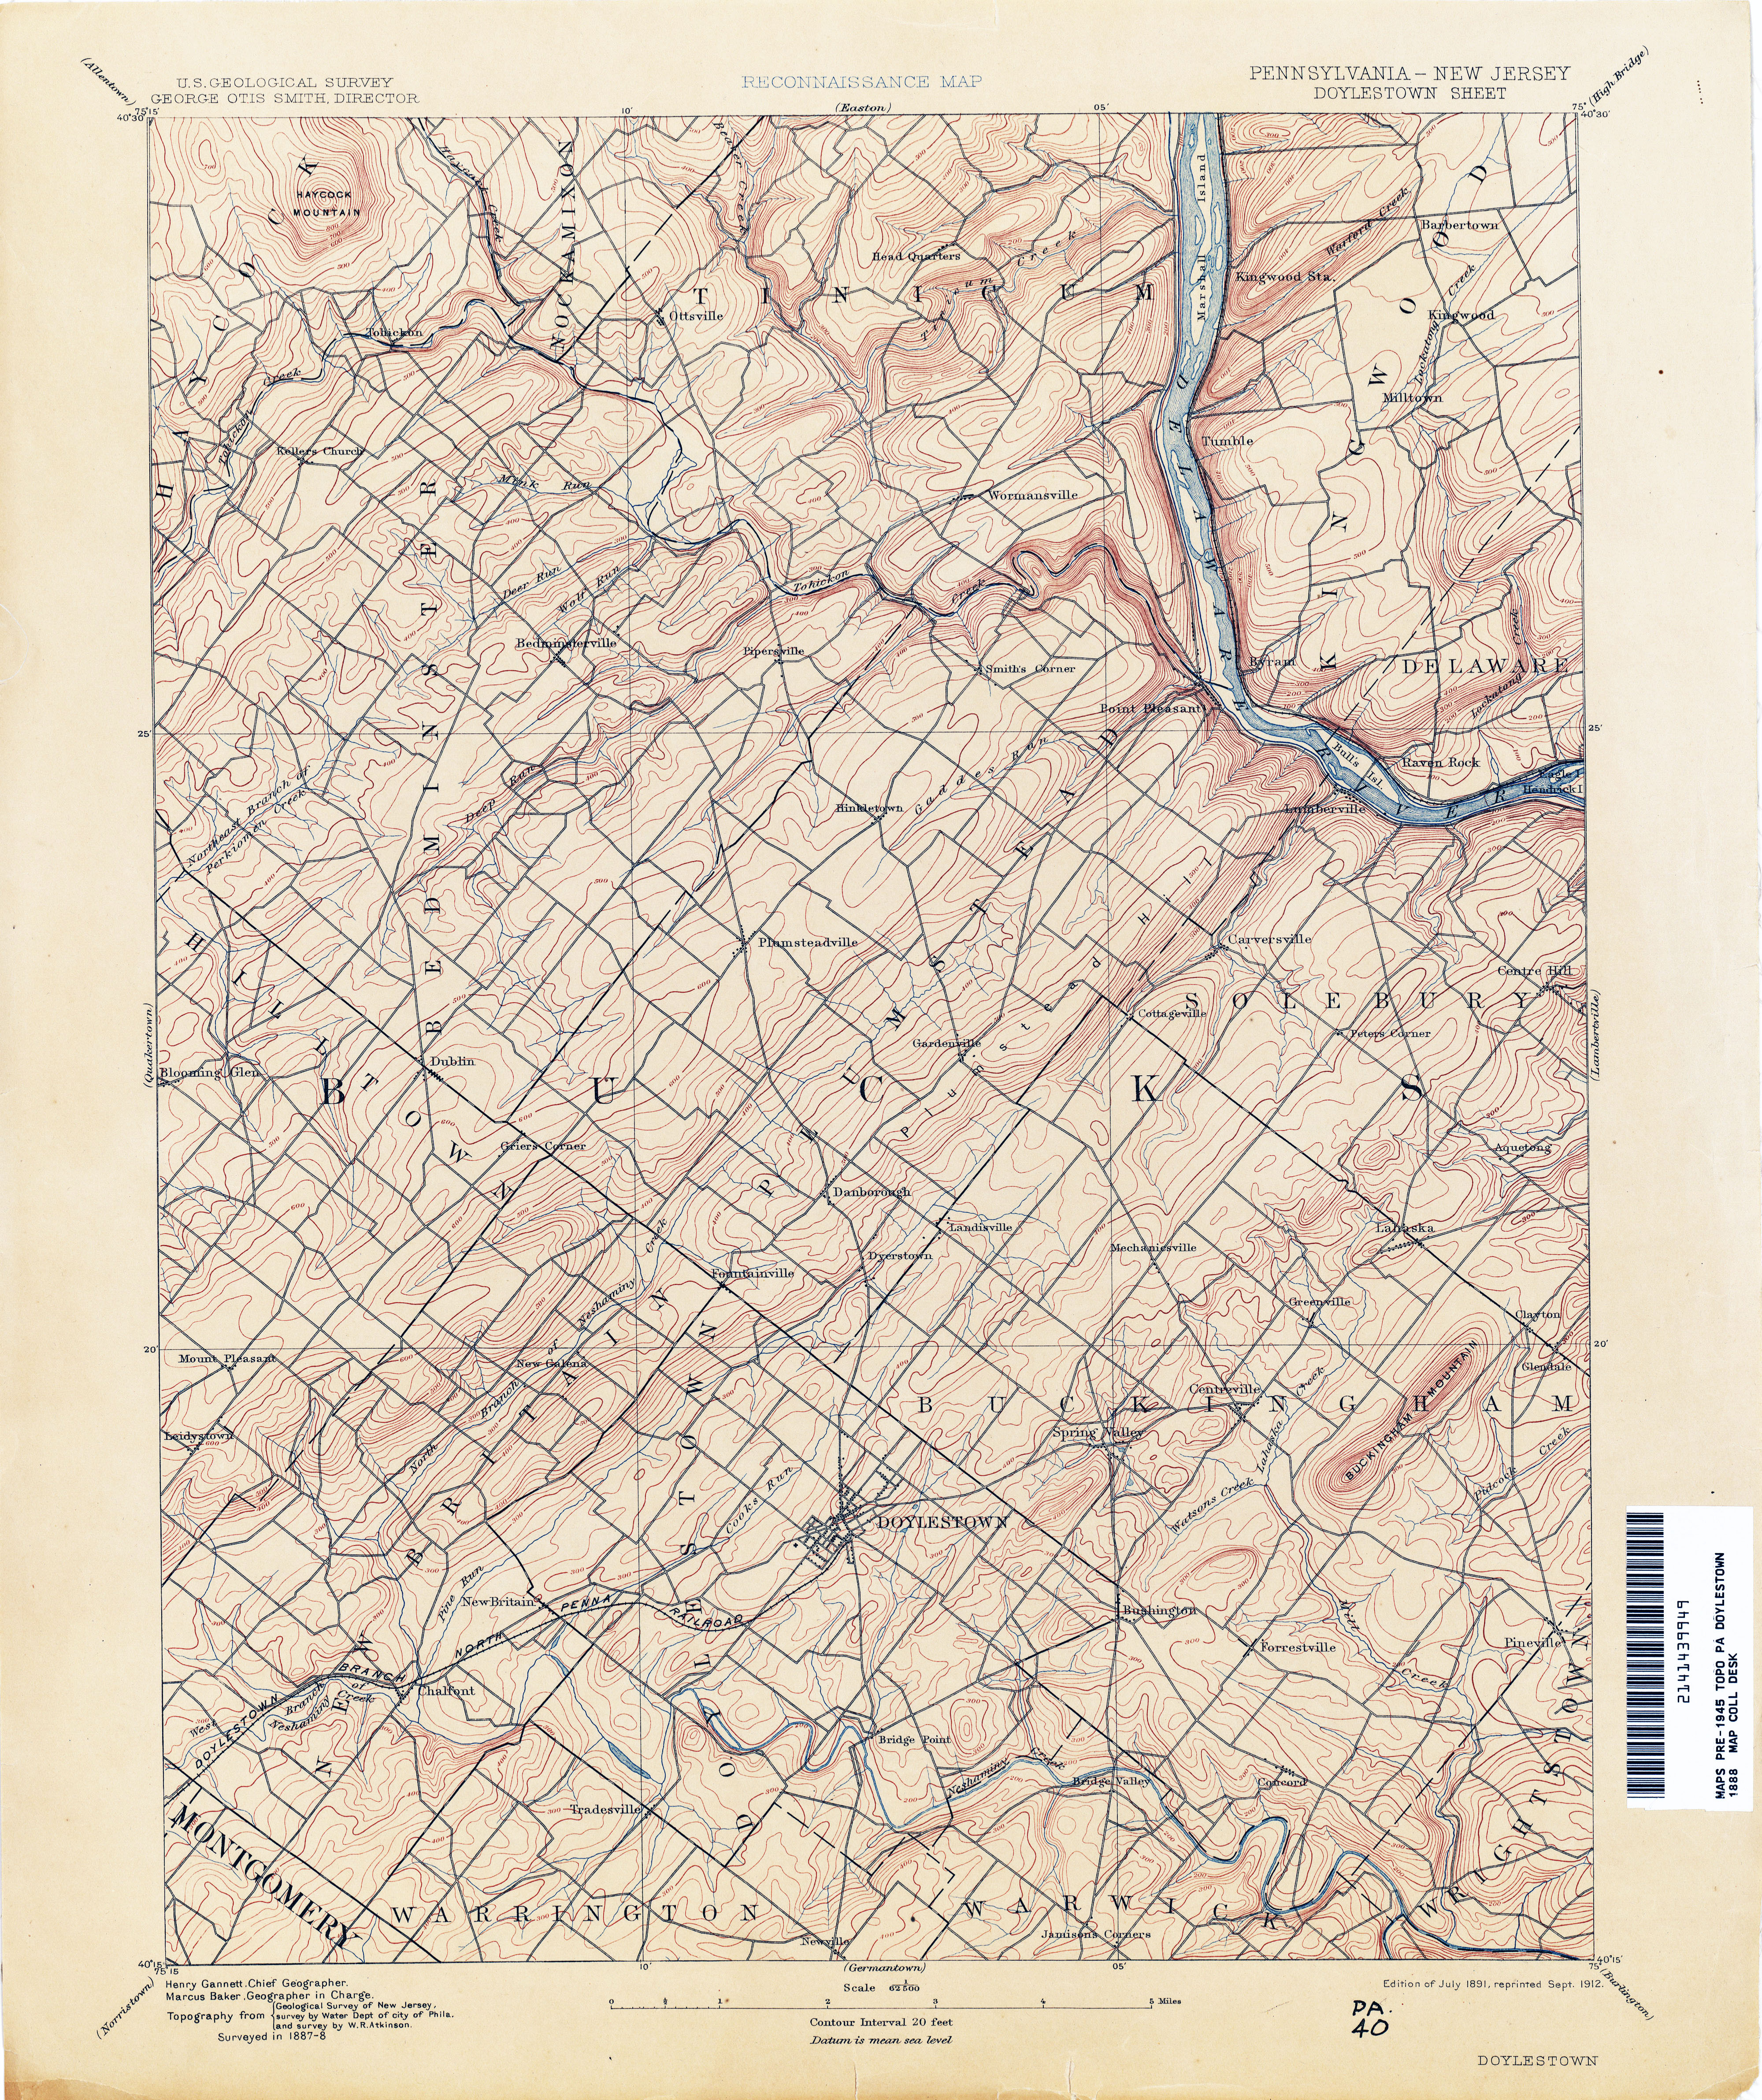 Book on CD 1888 Atlas and Geological Survey of New Jersey NJ Maps